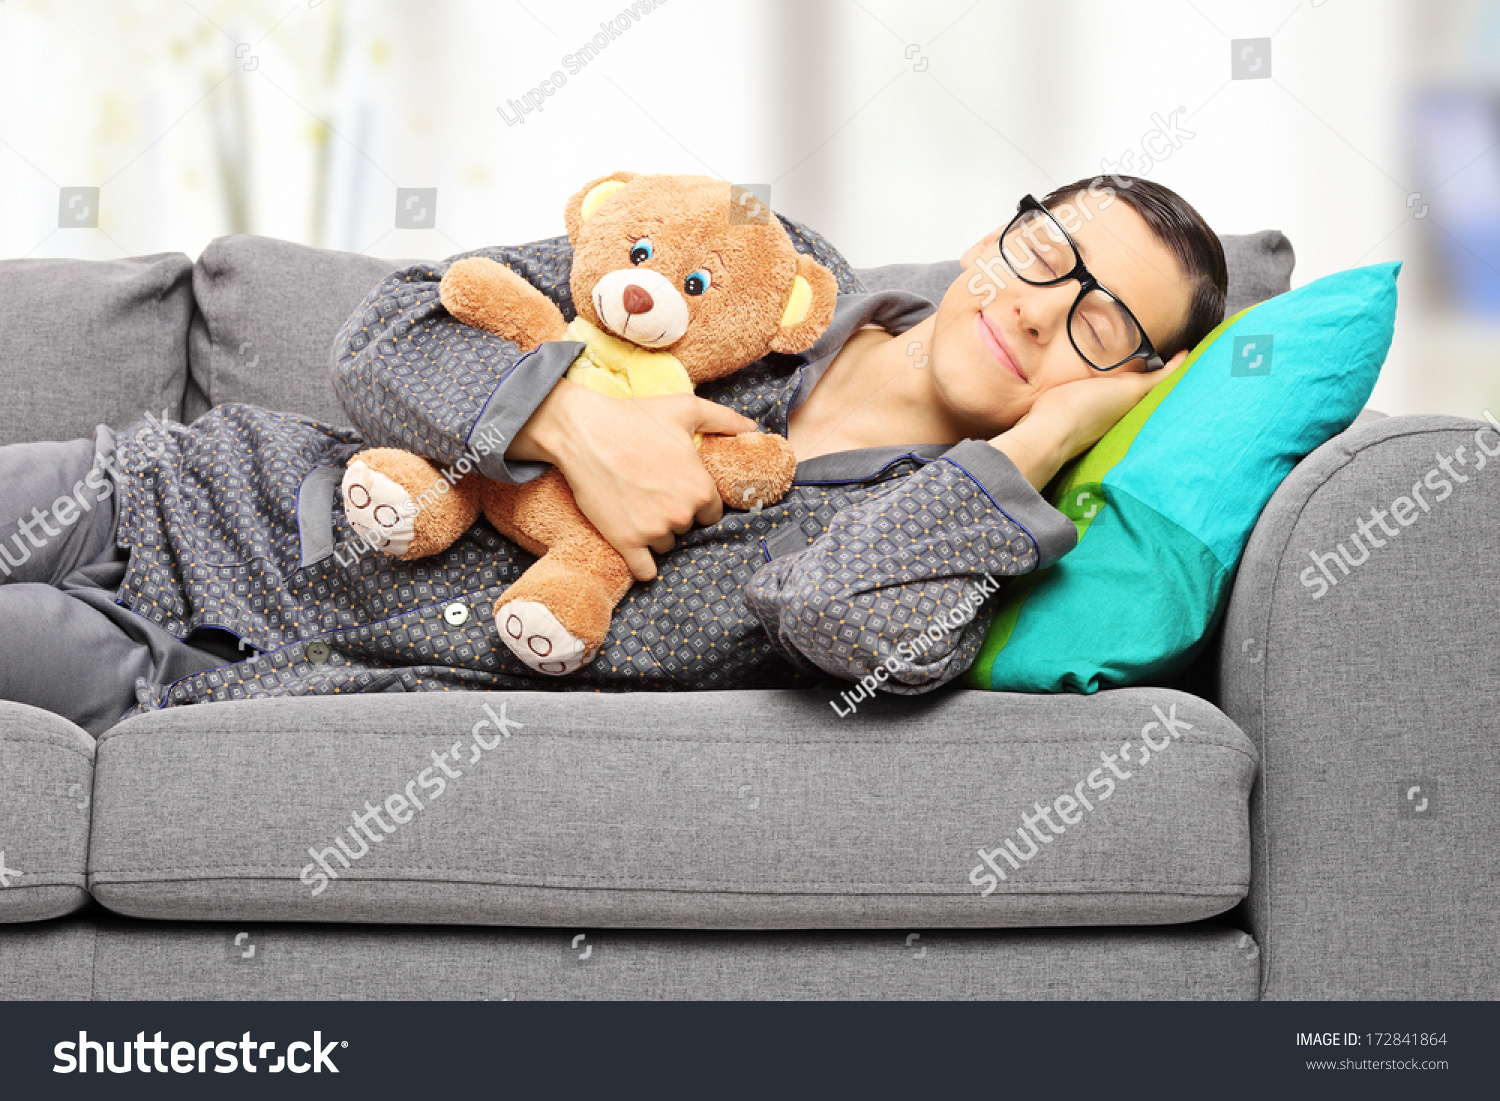 Young man holding teddy bear and taking a nap on couch at home stock photo 172841864 shutterstock - Dormire sul divano ...